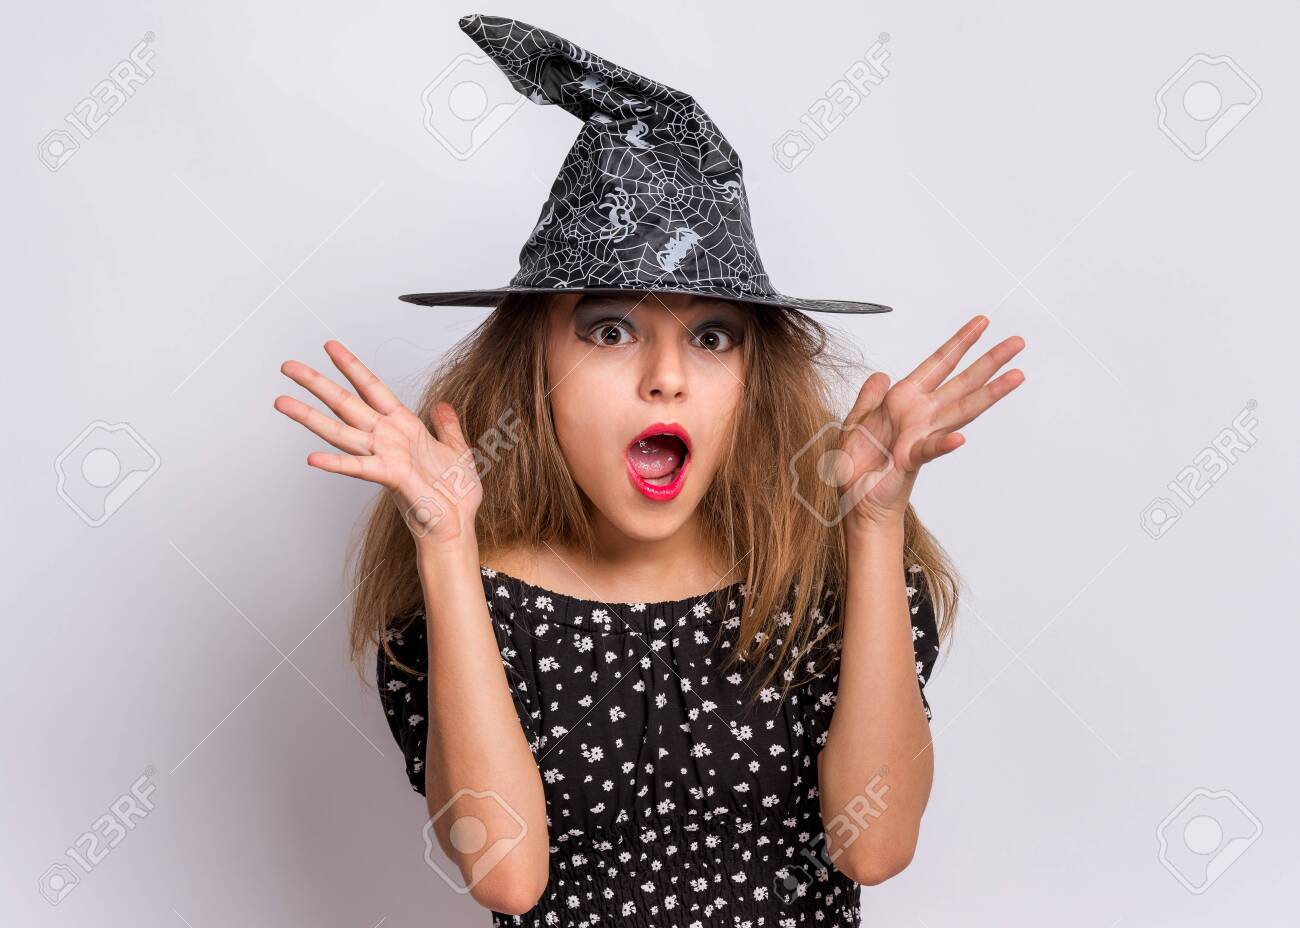 Happy halloween concept. Surprised Teen girl in witch black hat looking at camera in amazement on grey background. Cute child in witch halloween costume shouting, opening eyes and mouth with shock. - 129352606